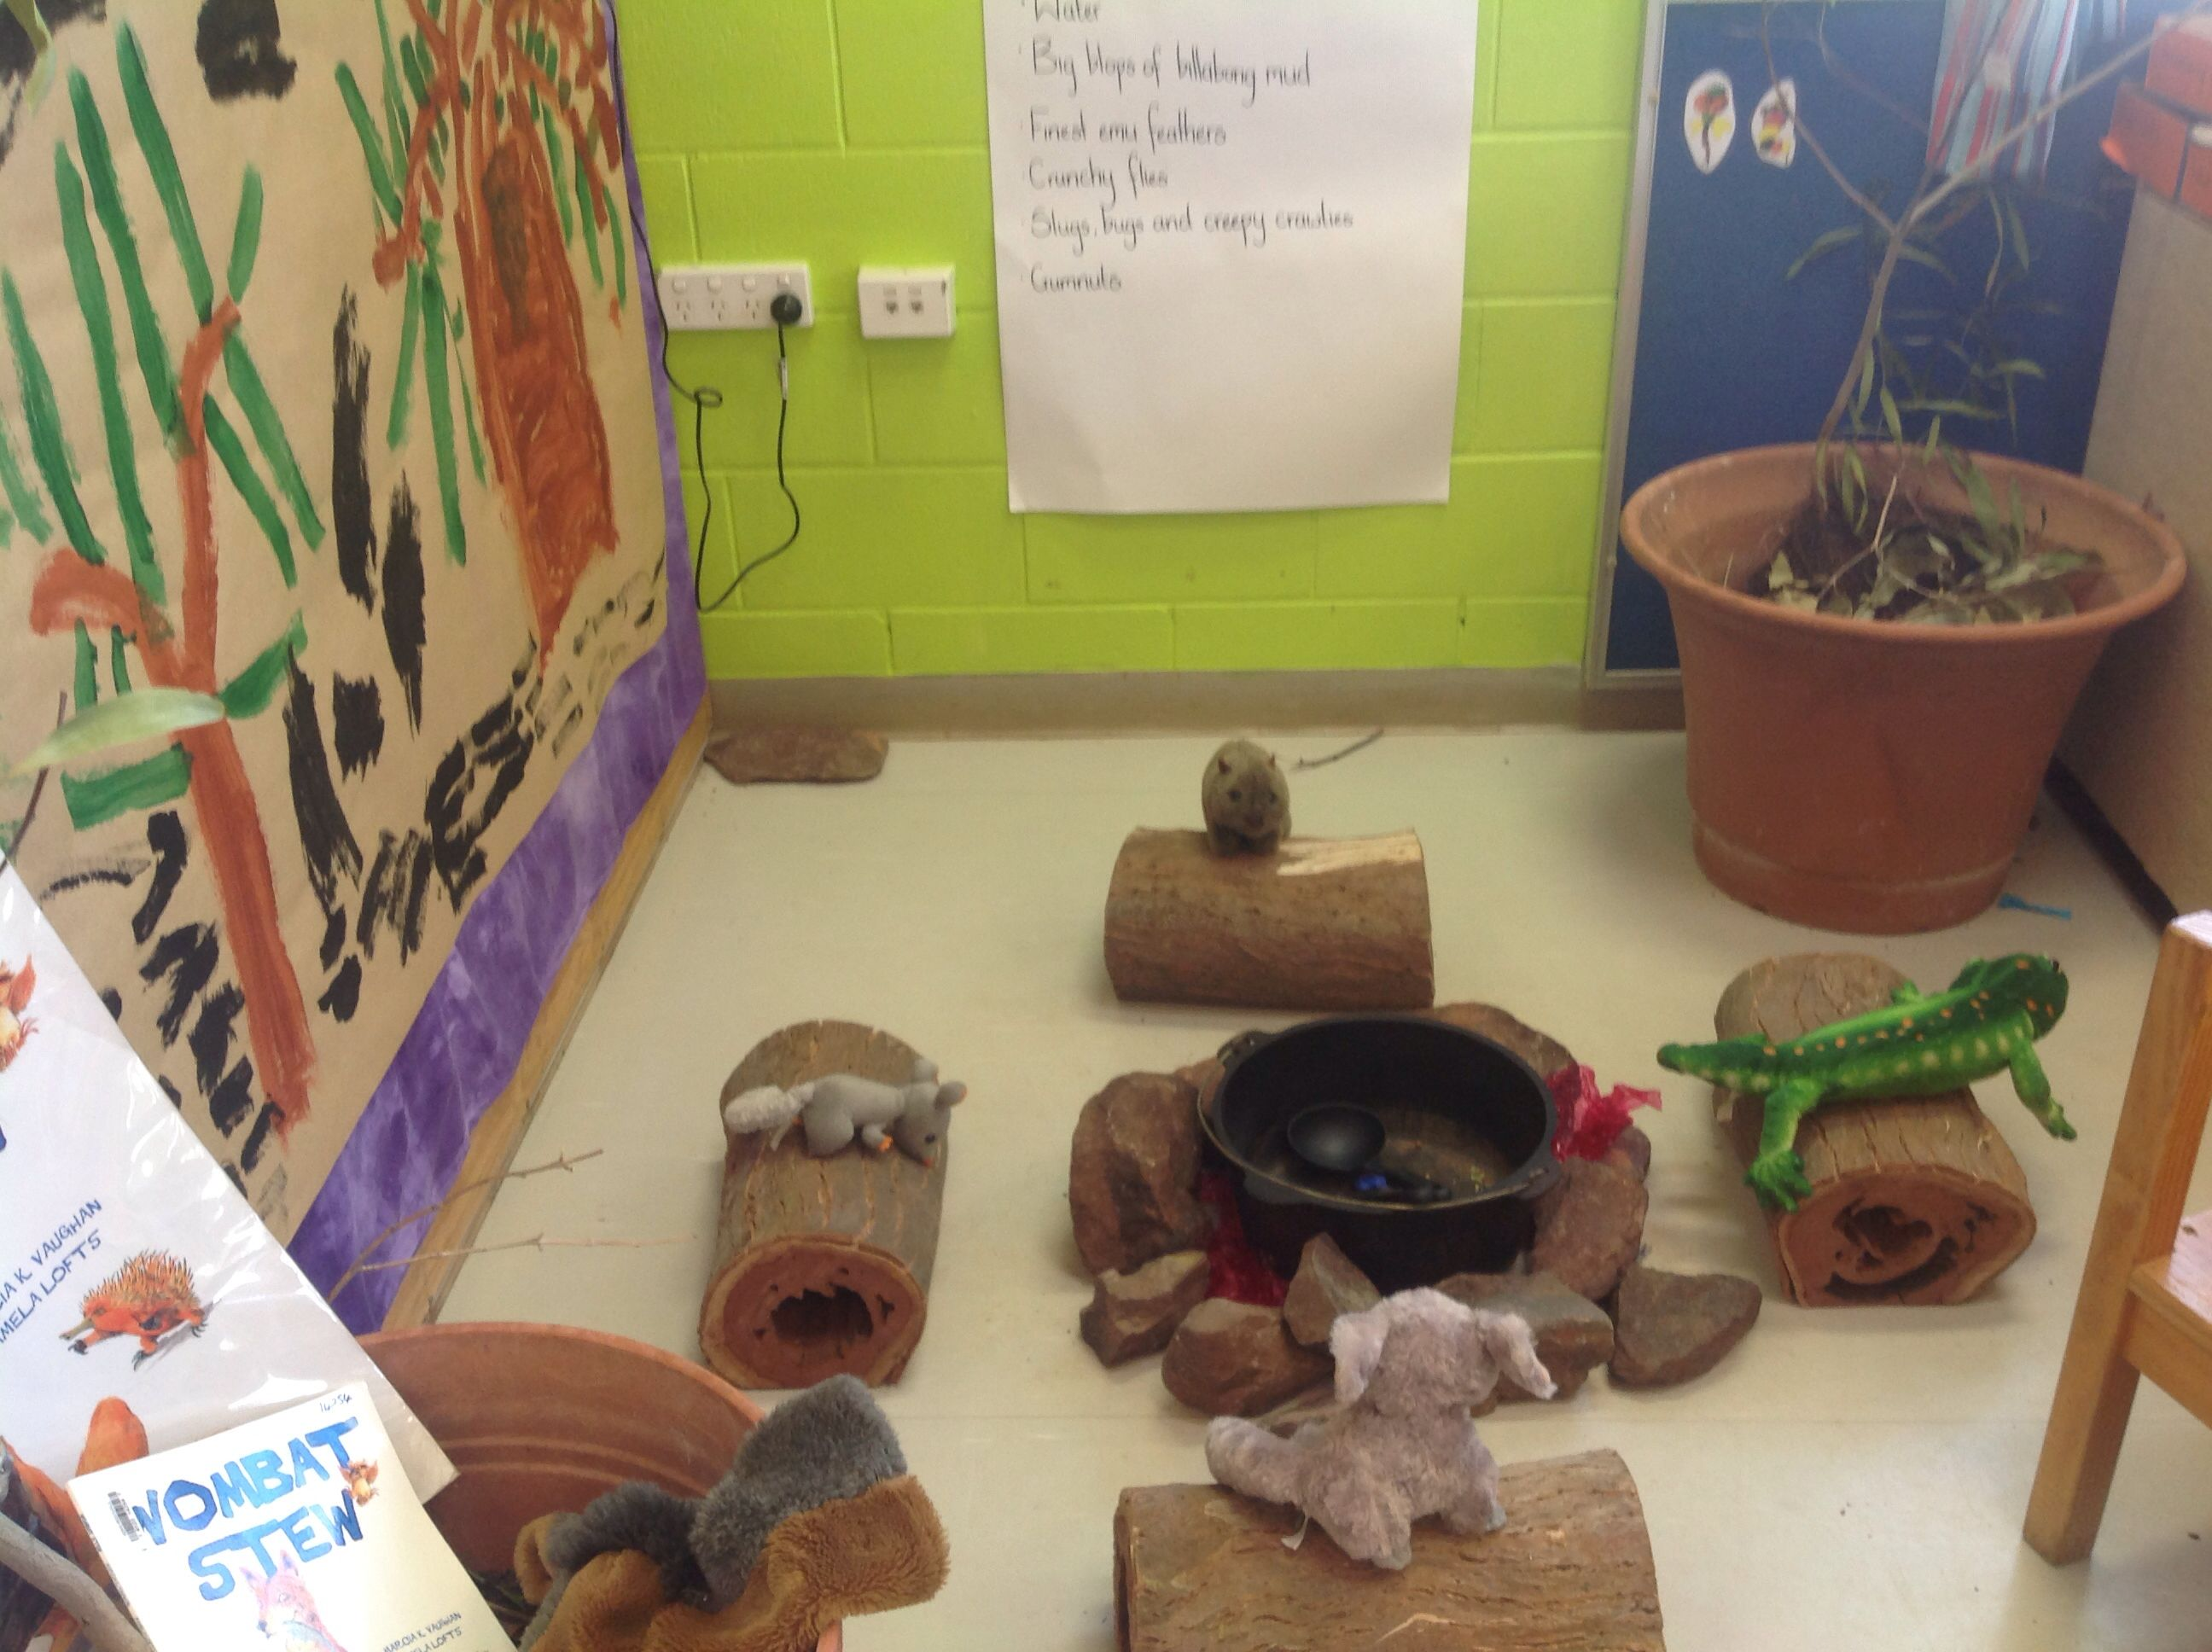 Wombat Stew Role Play